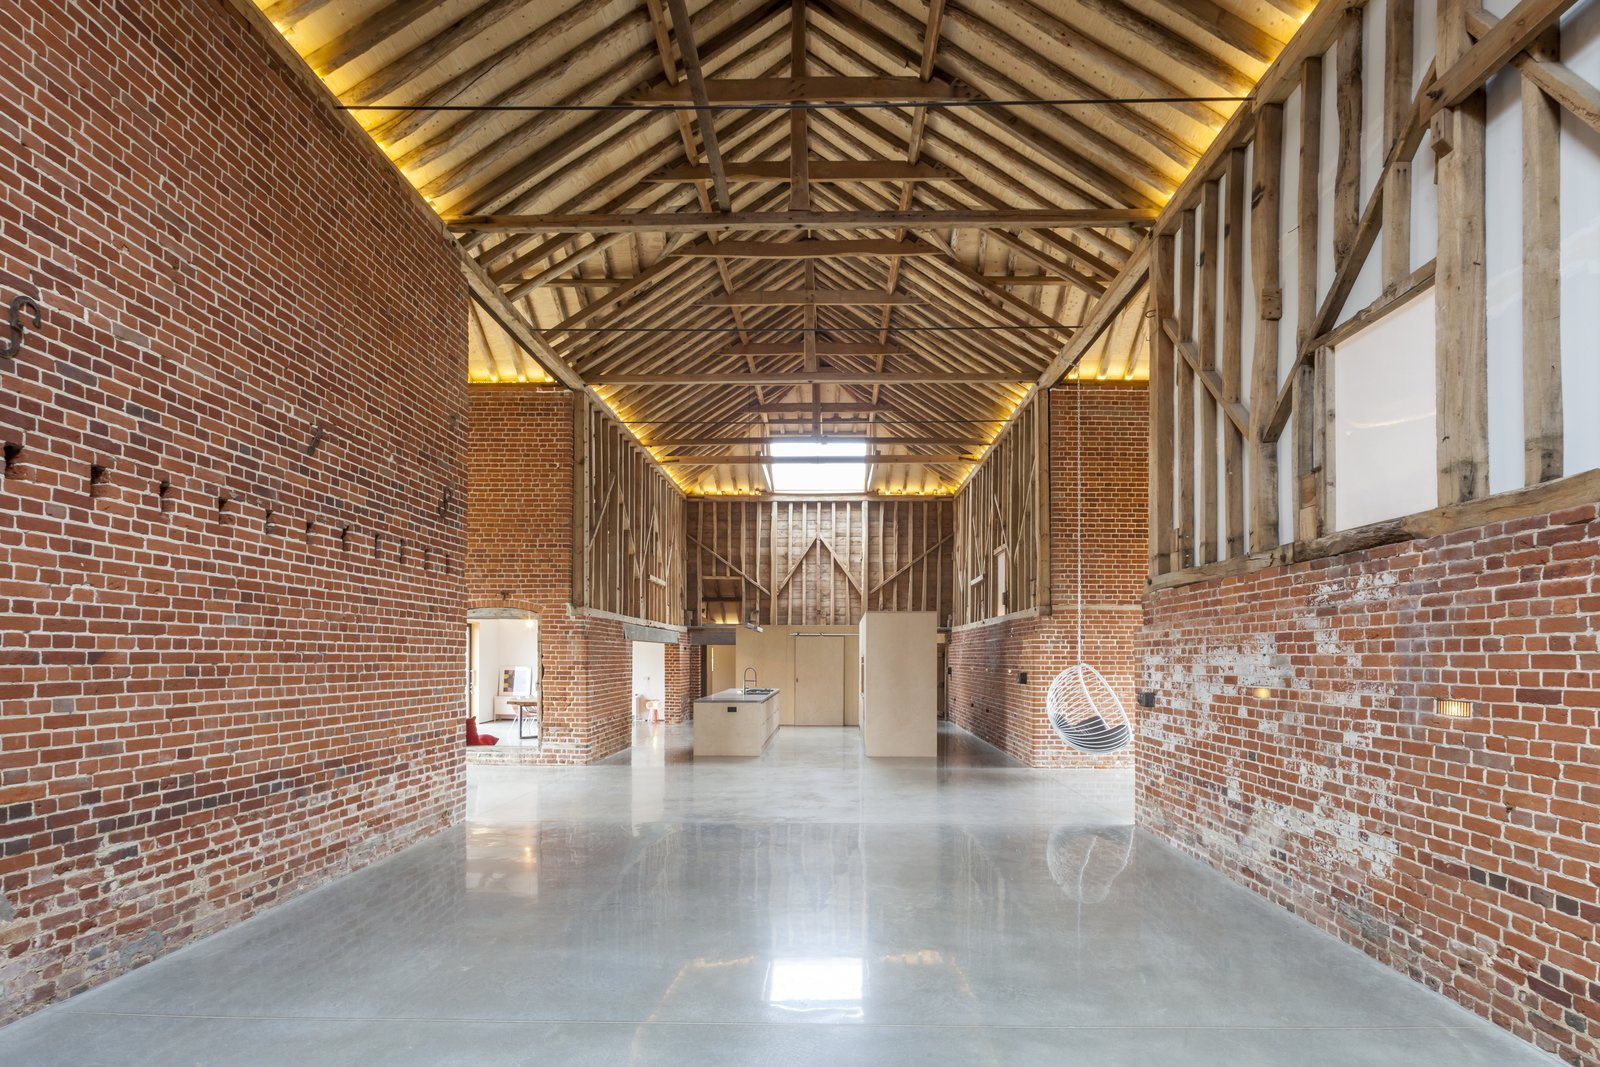 The renovation honors the grand, cathedral-like proportions of the original barn. In addition to the Tagged: Hallway and Concrete Floor.  Photo 4 of 10 in This Converted Barn in the English Countryside Stays True to its Historic Roots